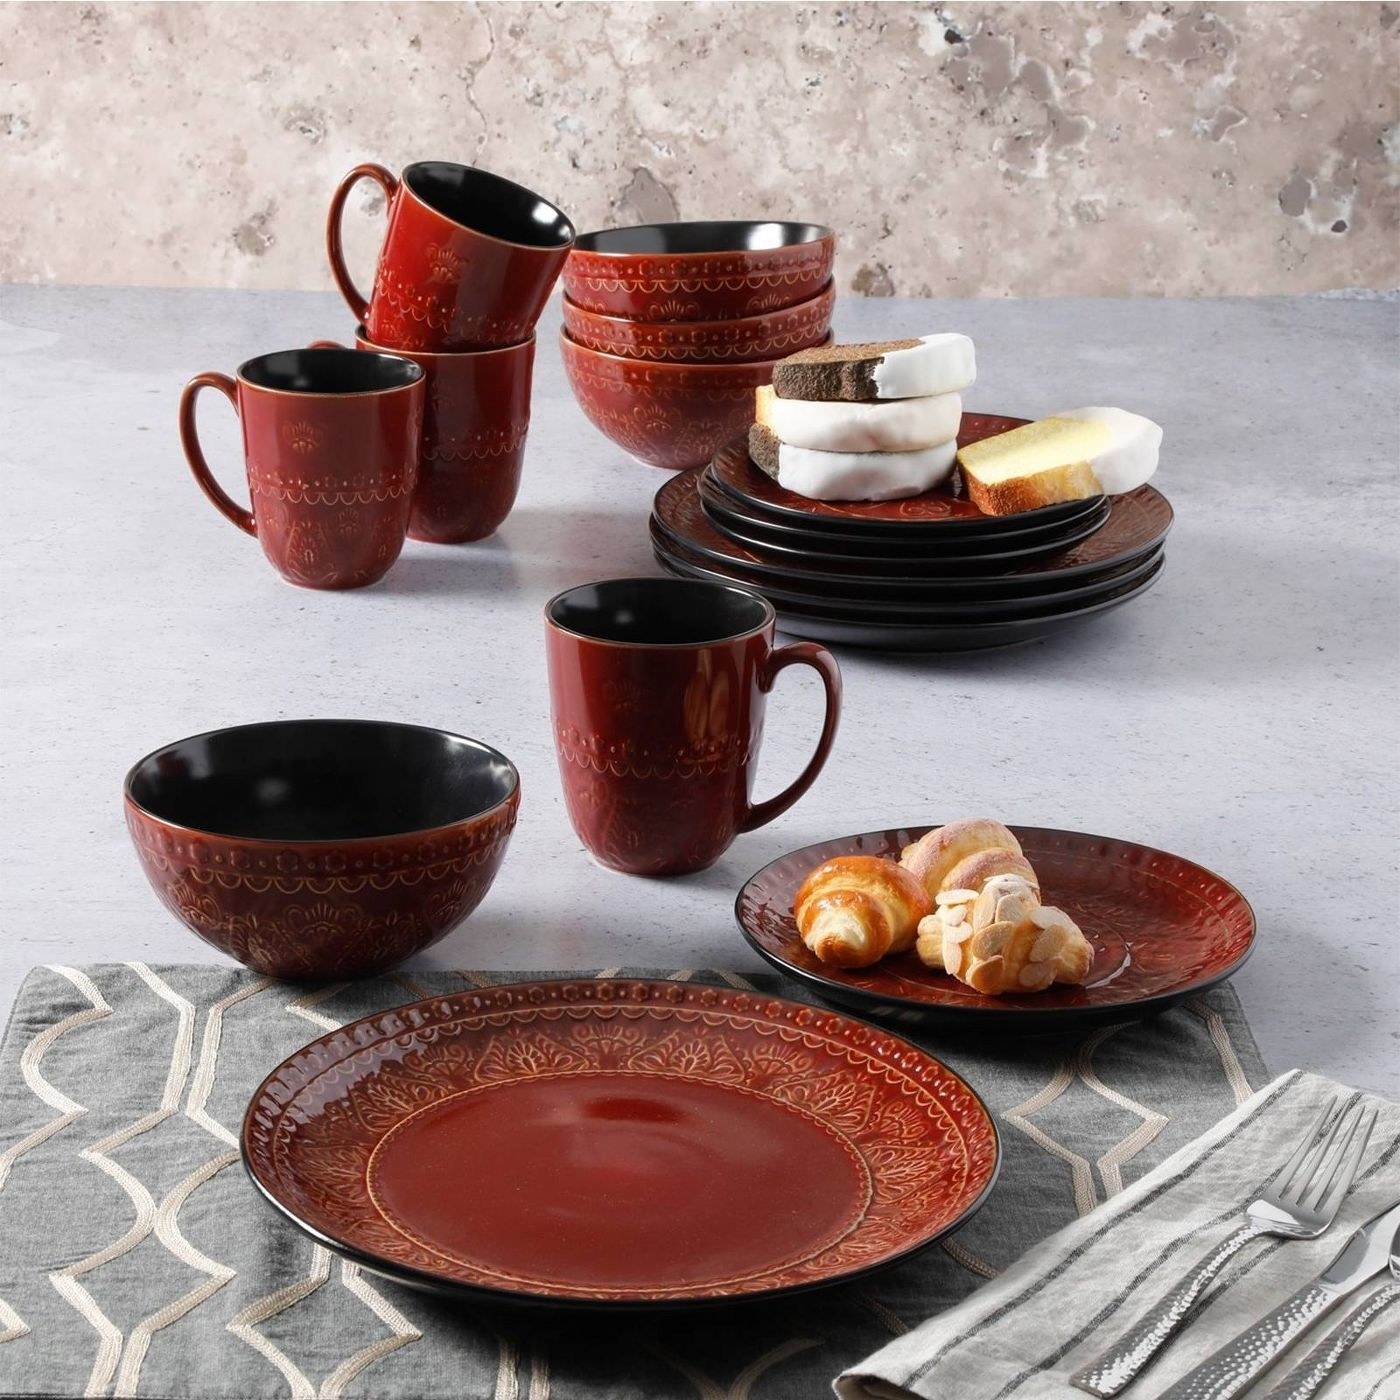 set of red cookware with floral design on it